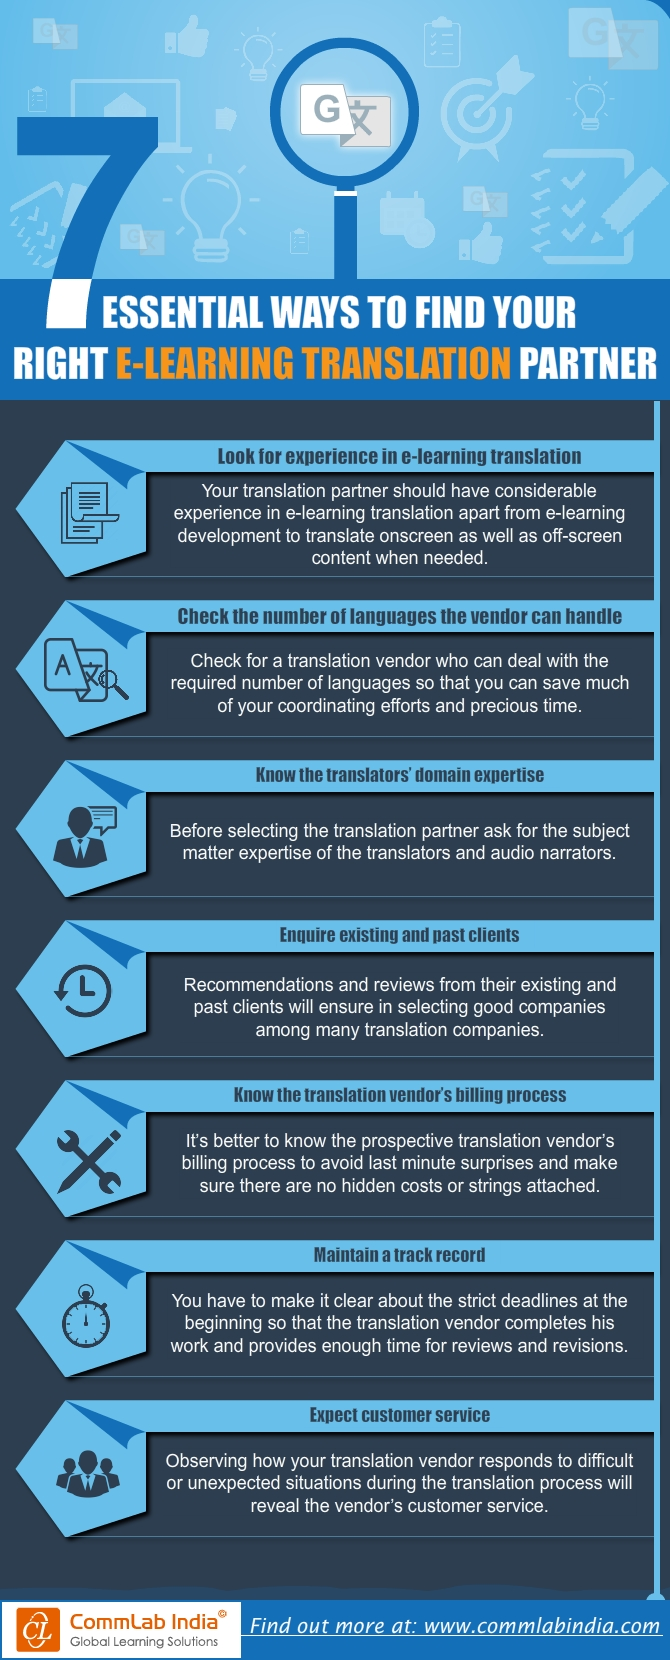 7 Essential Ways to Find Your Right E-learning Translation Partner [Infographic]